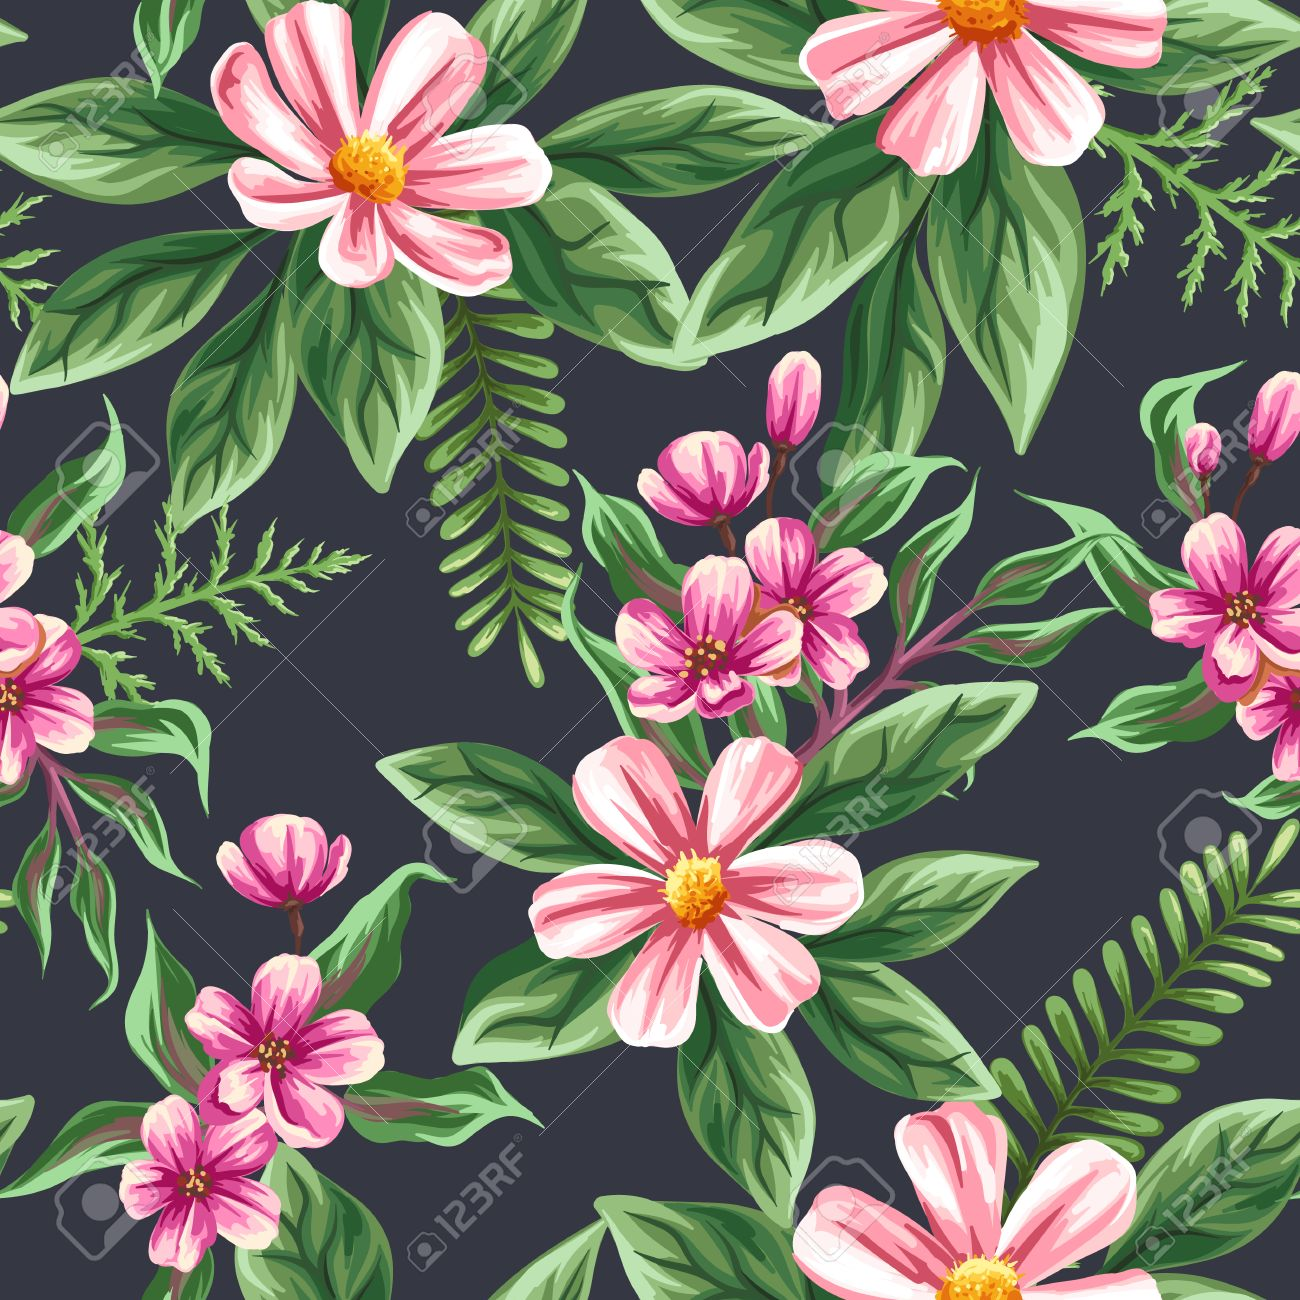 Floral Seamless Pattern With Flowers And Leaves On Dark Background ...